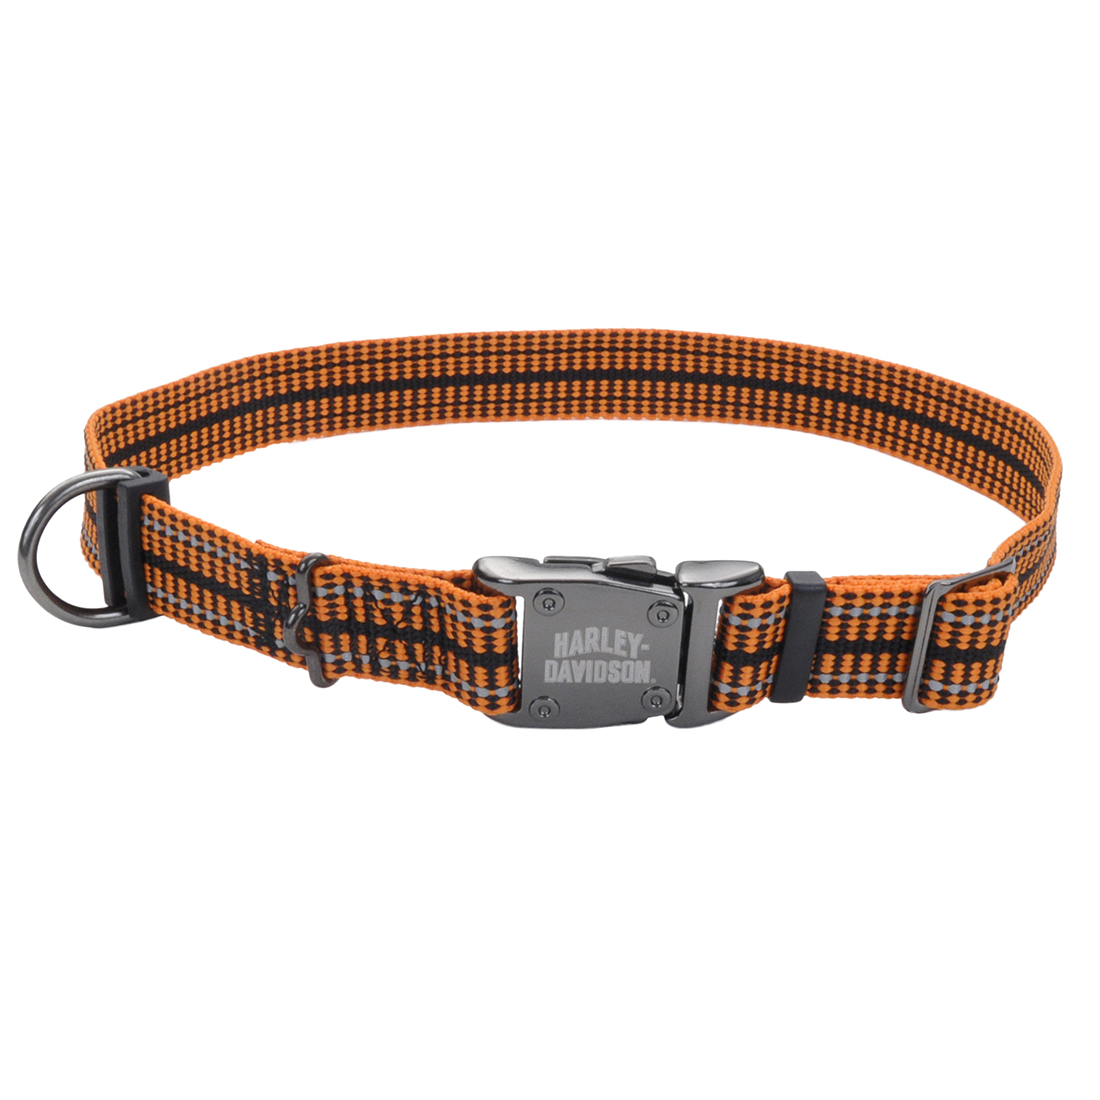 Harley-Davidson Reflective Rugged Adjustable Dog Collar